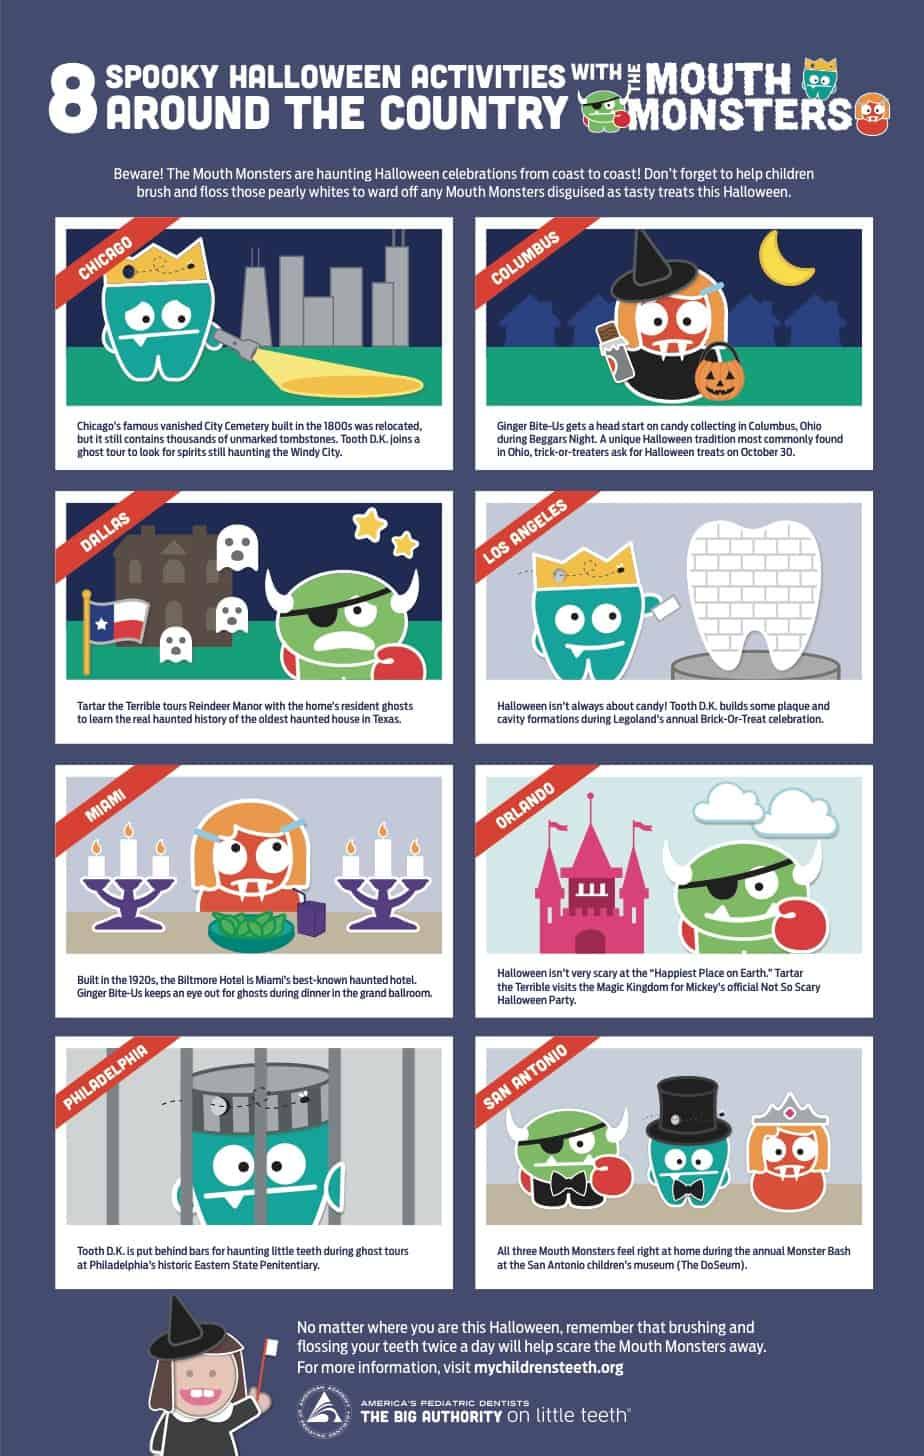 8 Spooky Halloween Activities with the Mouth Monsters